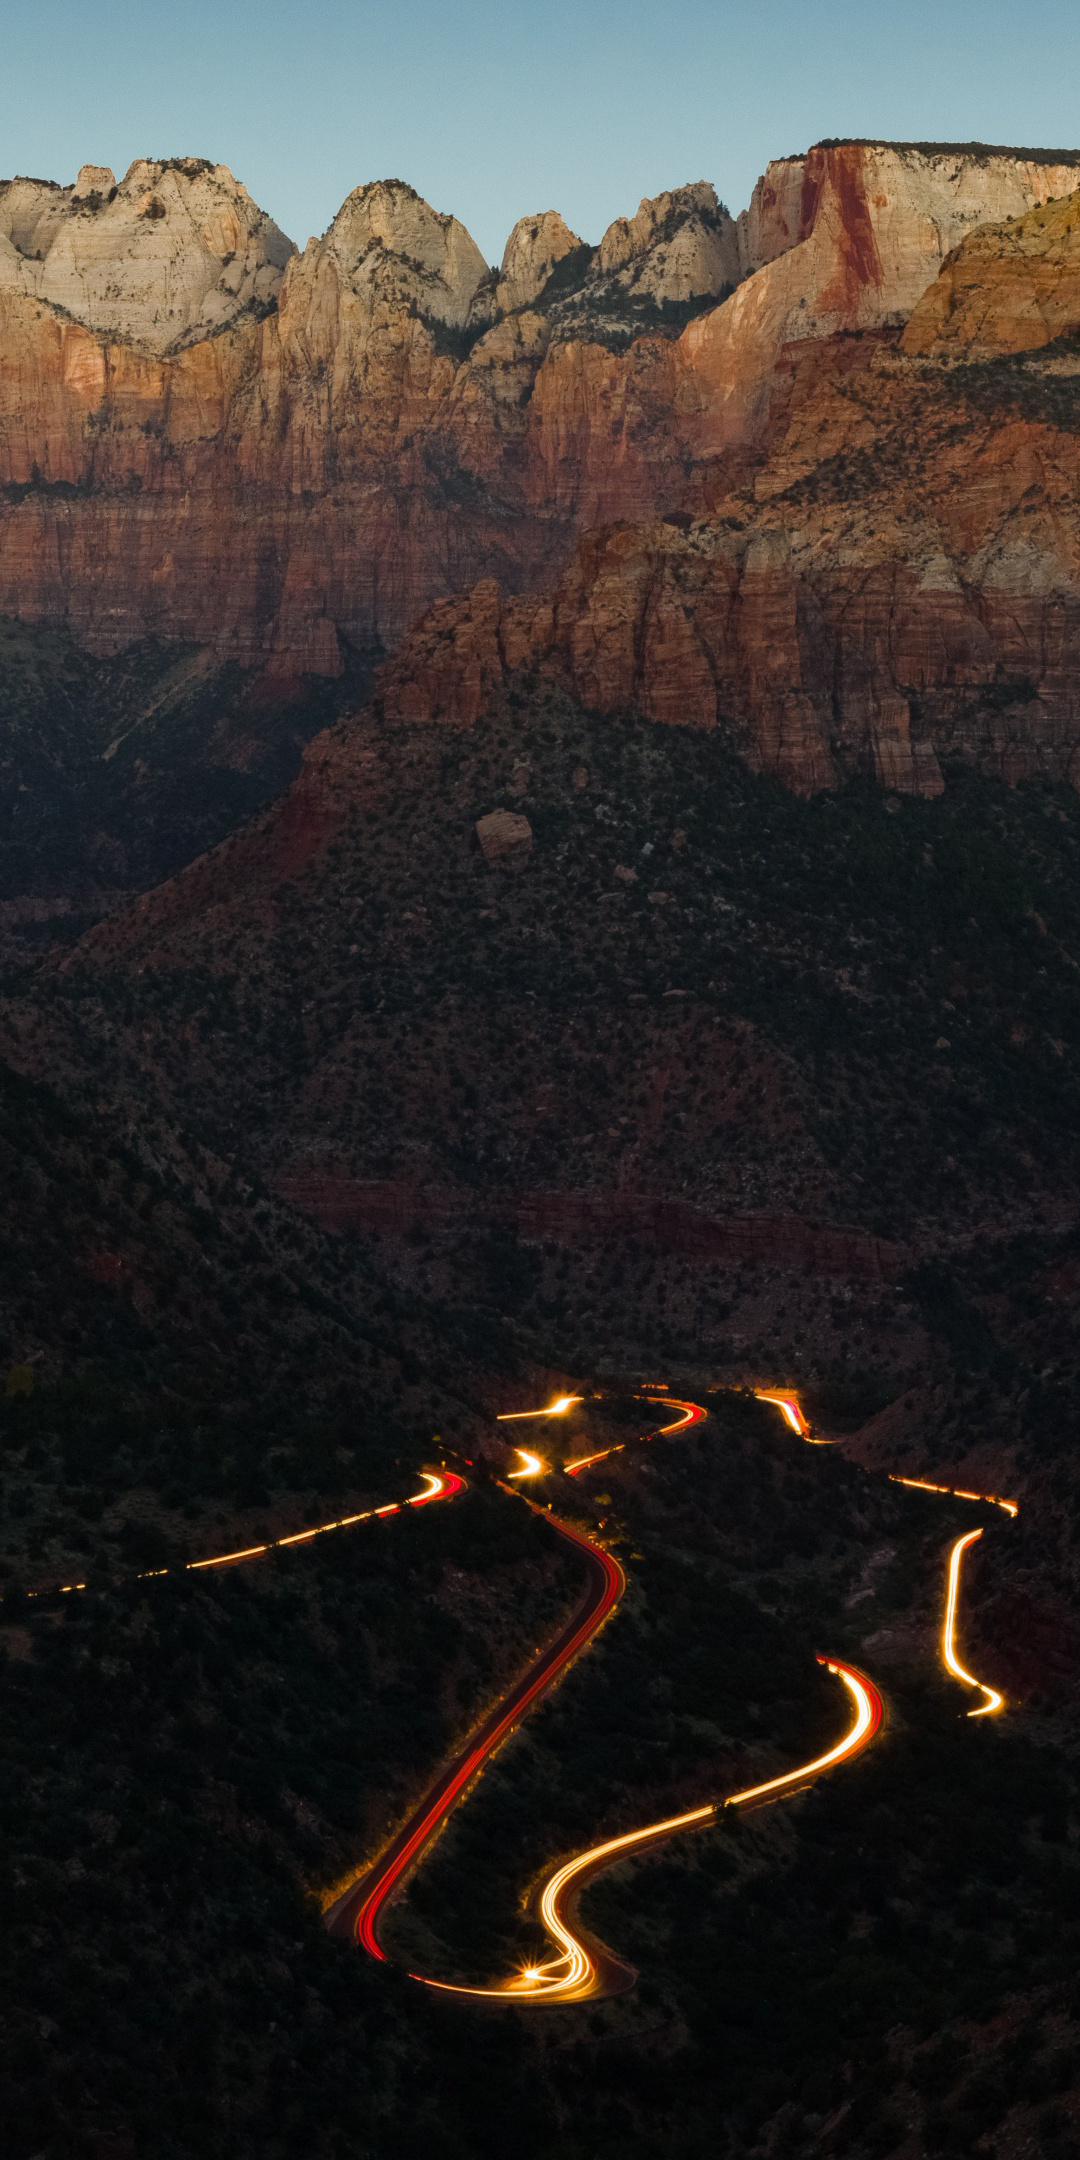 zion-national-park-canyon-overlook-at-dawn-4k-4r.jpg